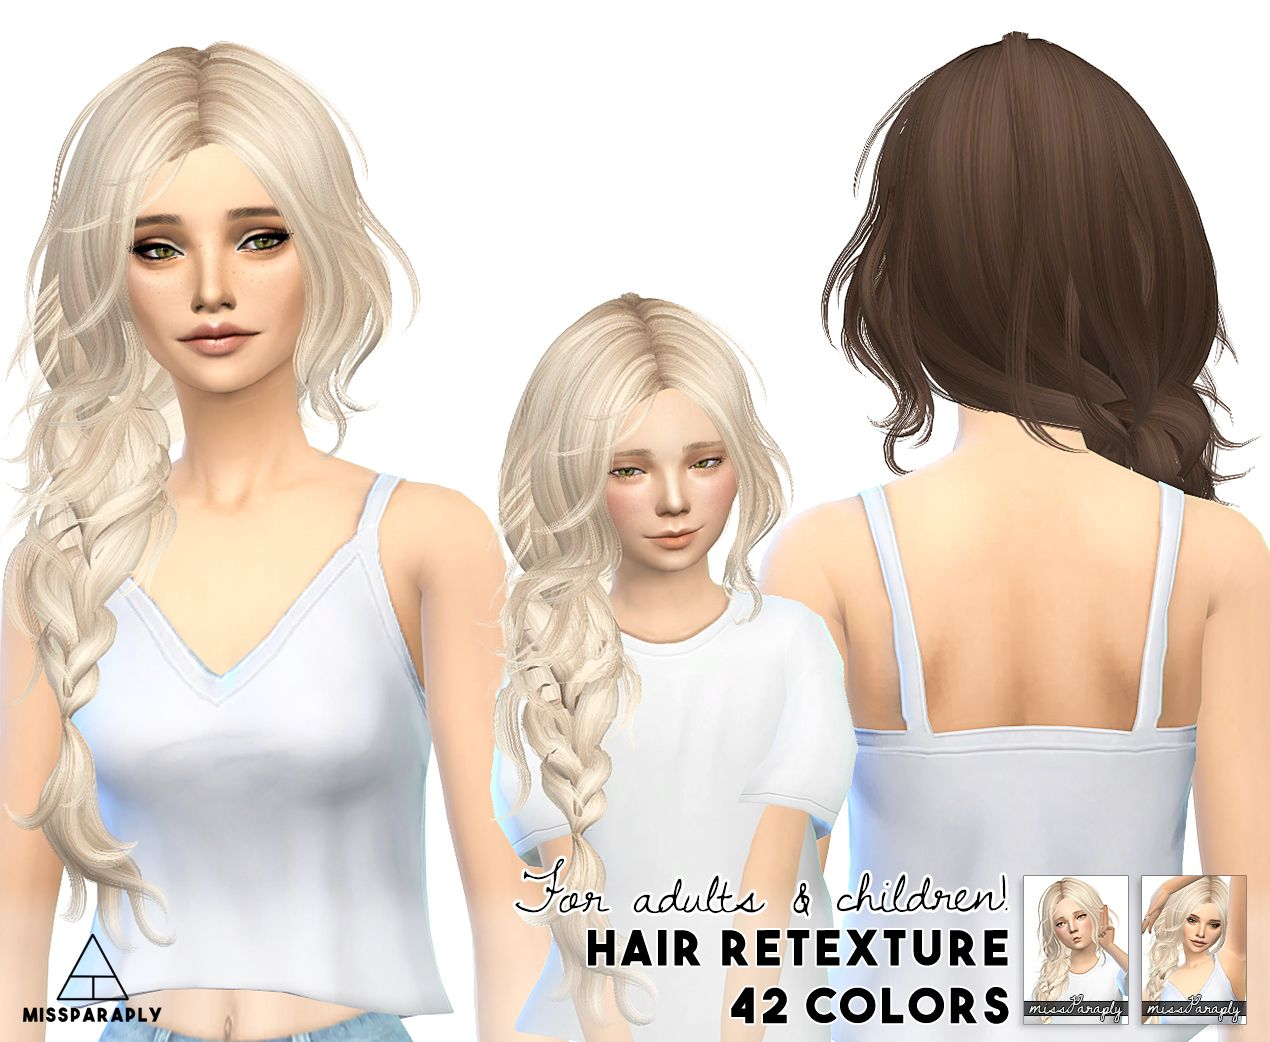 The sims 4 hairstyles cc - Miss Paraply Maysims 43 Hairstyle Retextured Sims 4 Hairs Http The Simssims Cclong